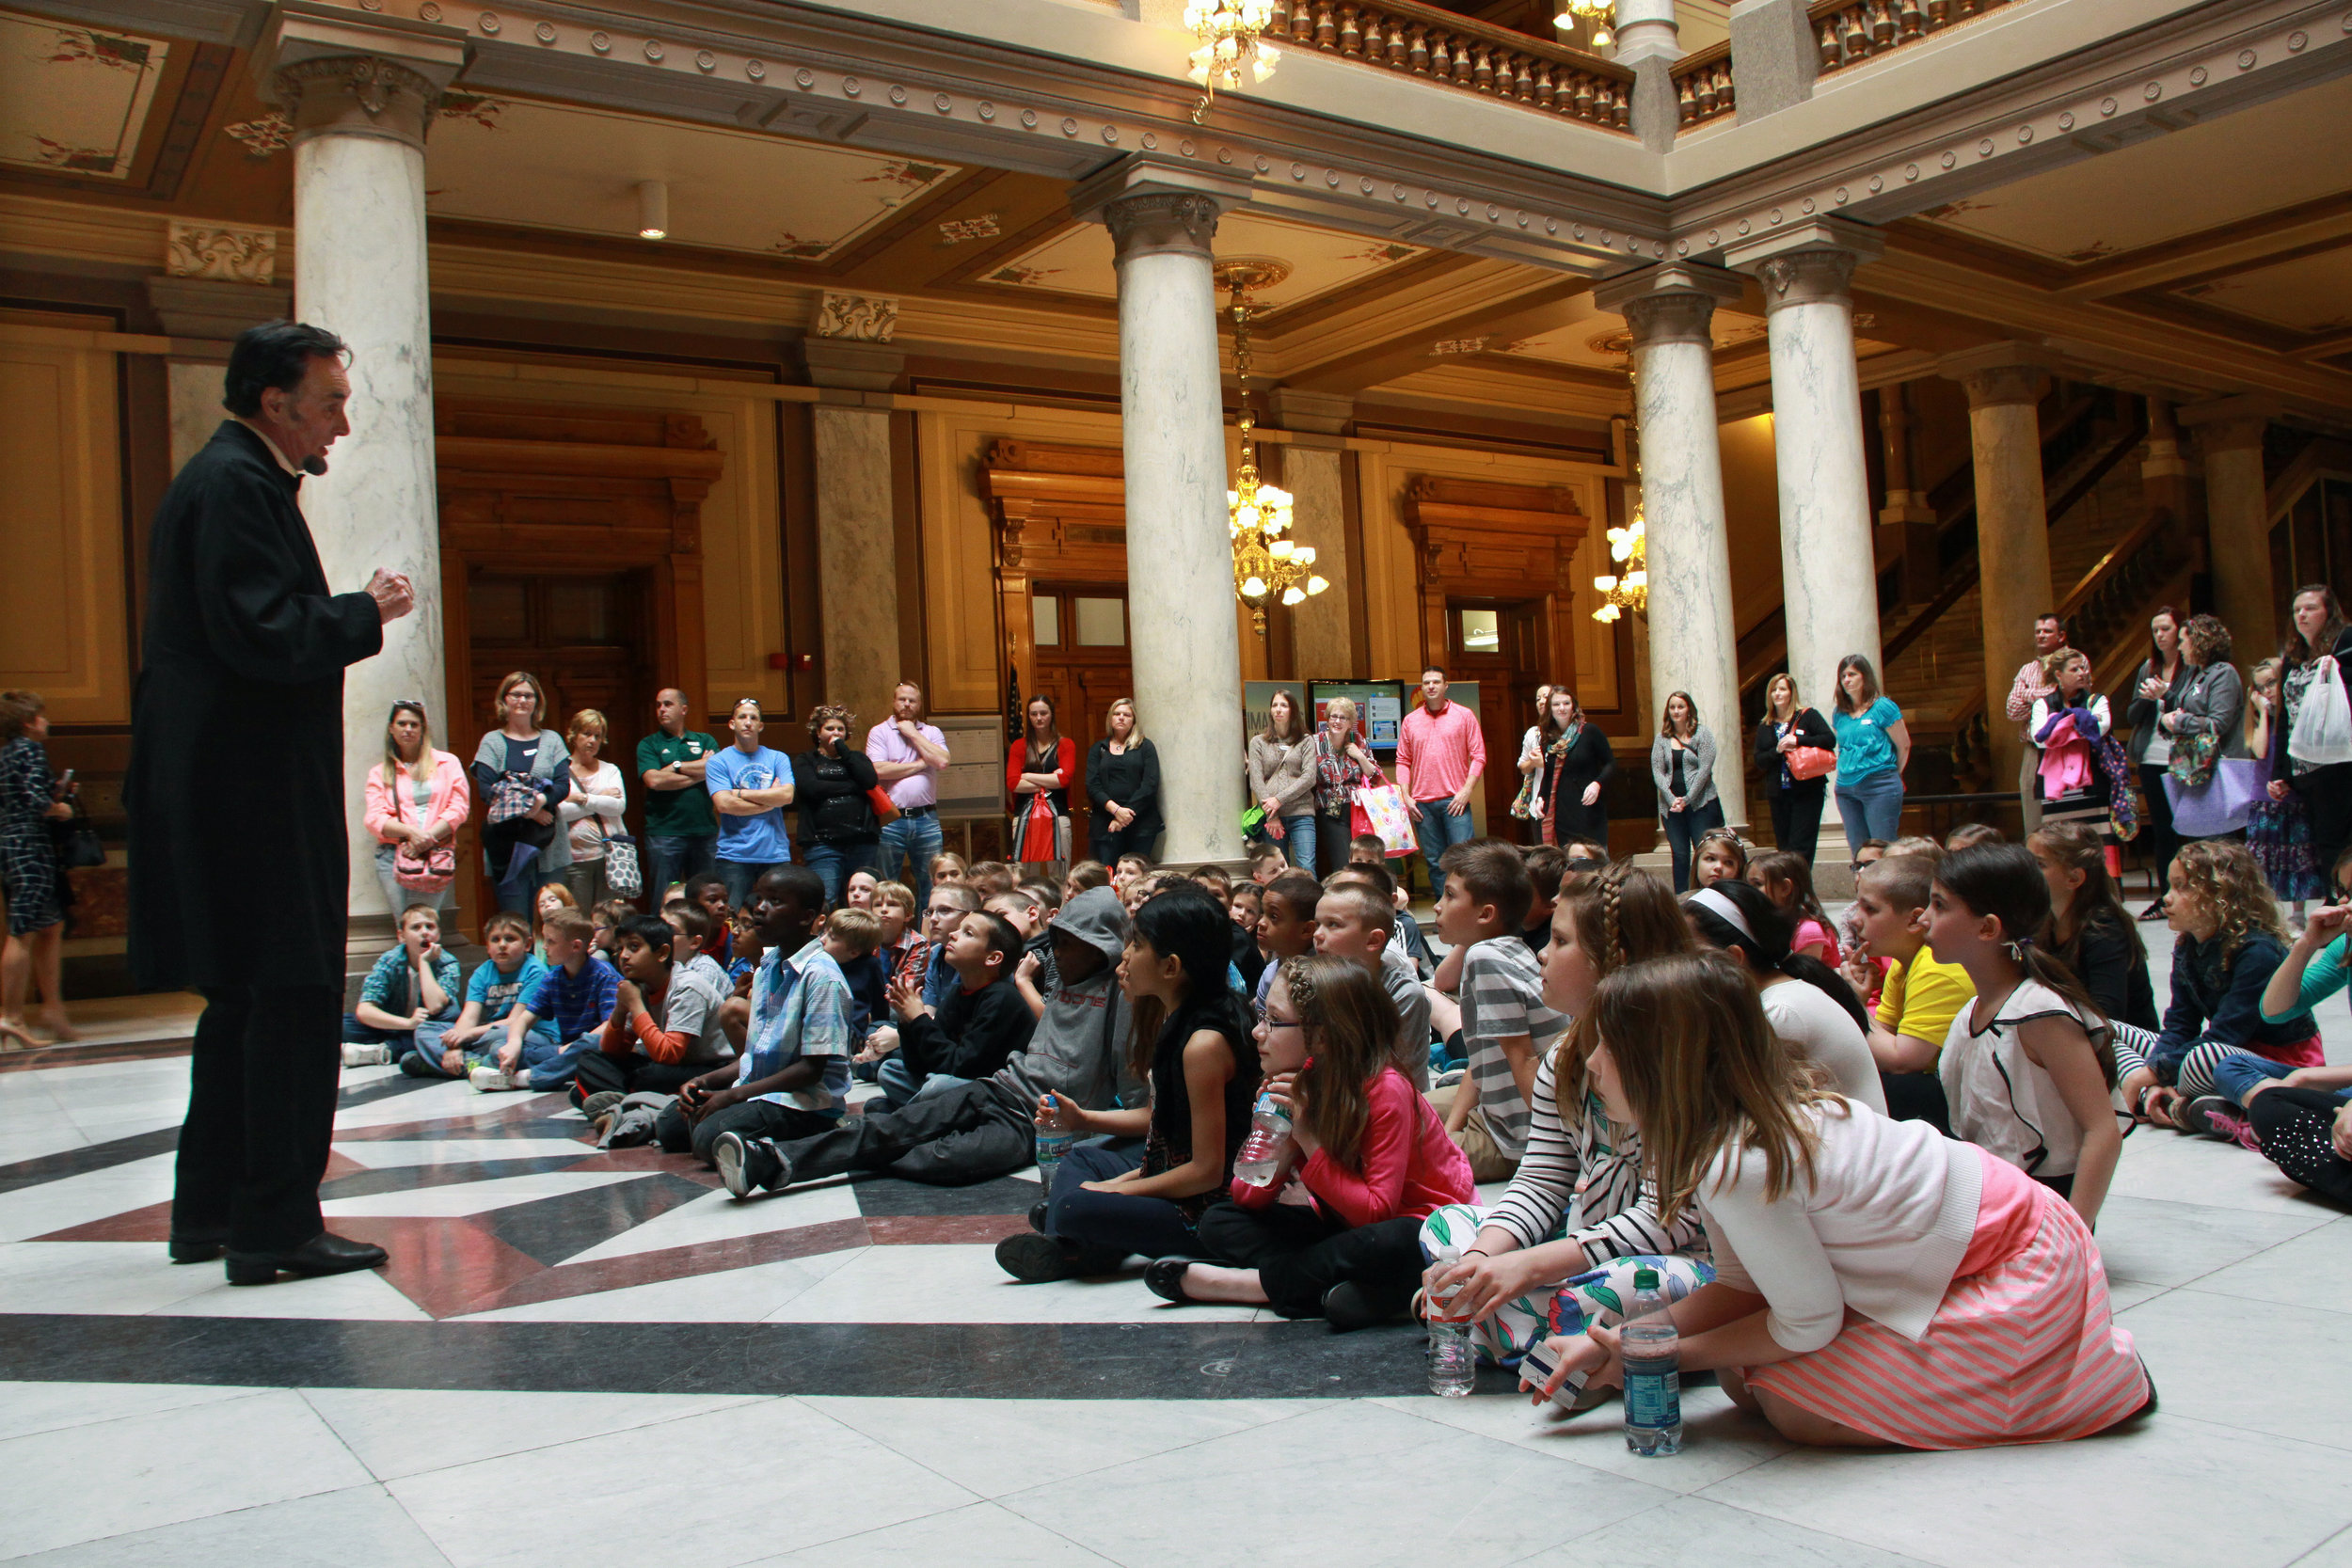 Children listen to President Abraham Lincoln reenactor in a courthouse lobby